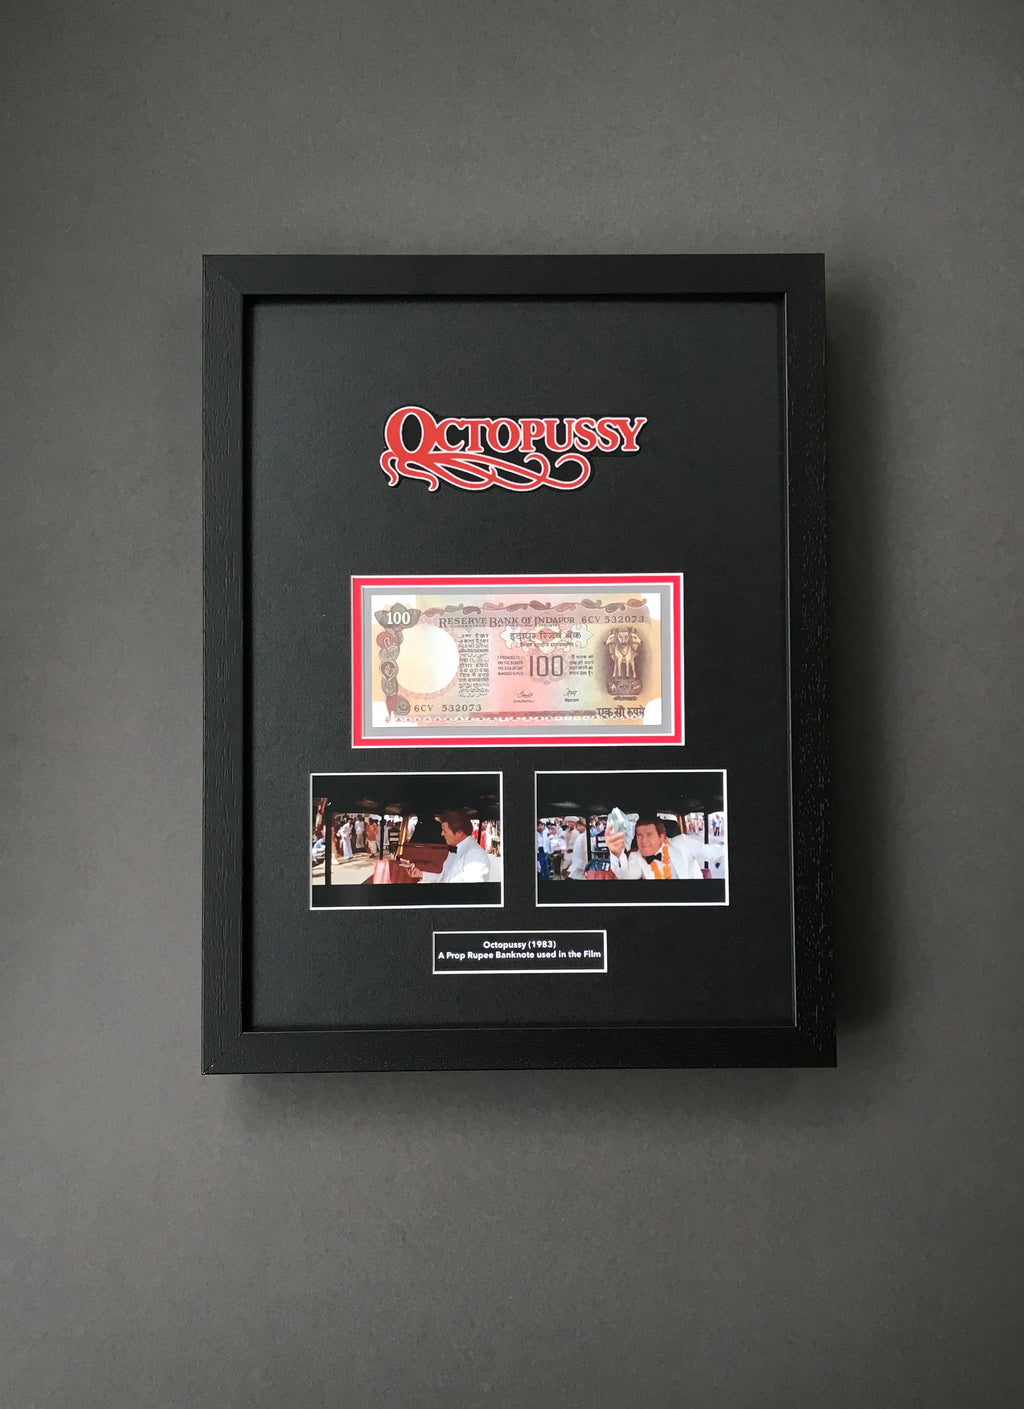 Octopussy (1983) - A Framed Prop Rupee Banknote